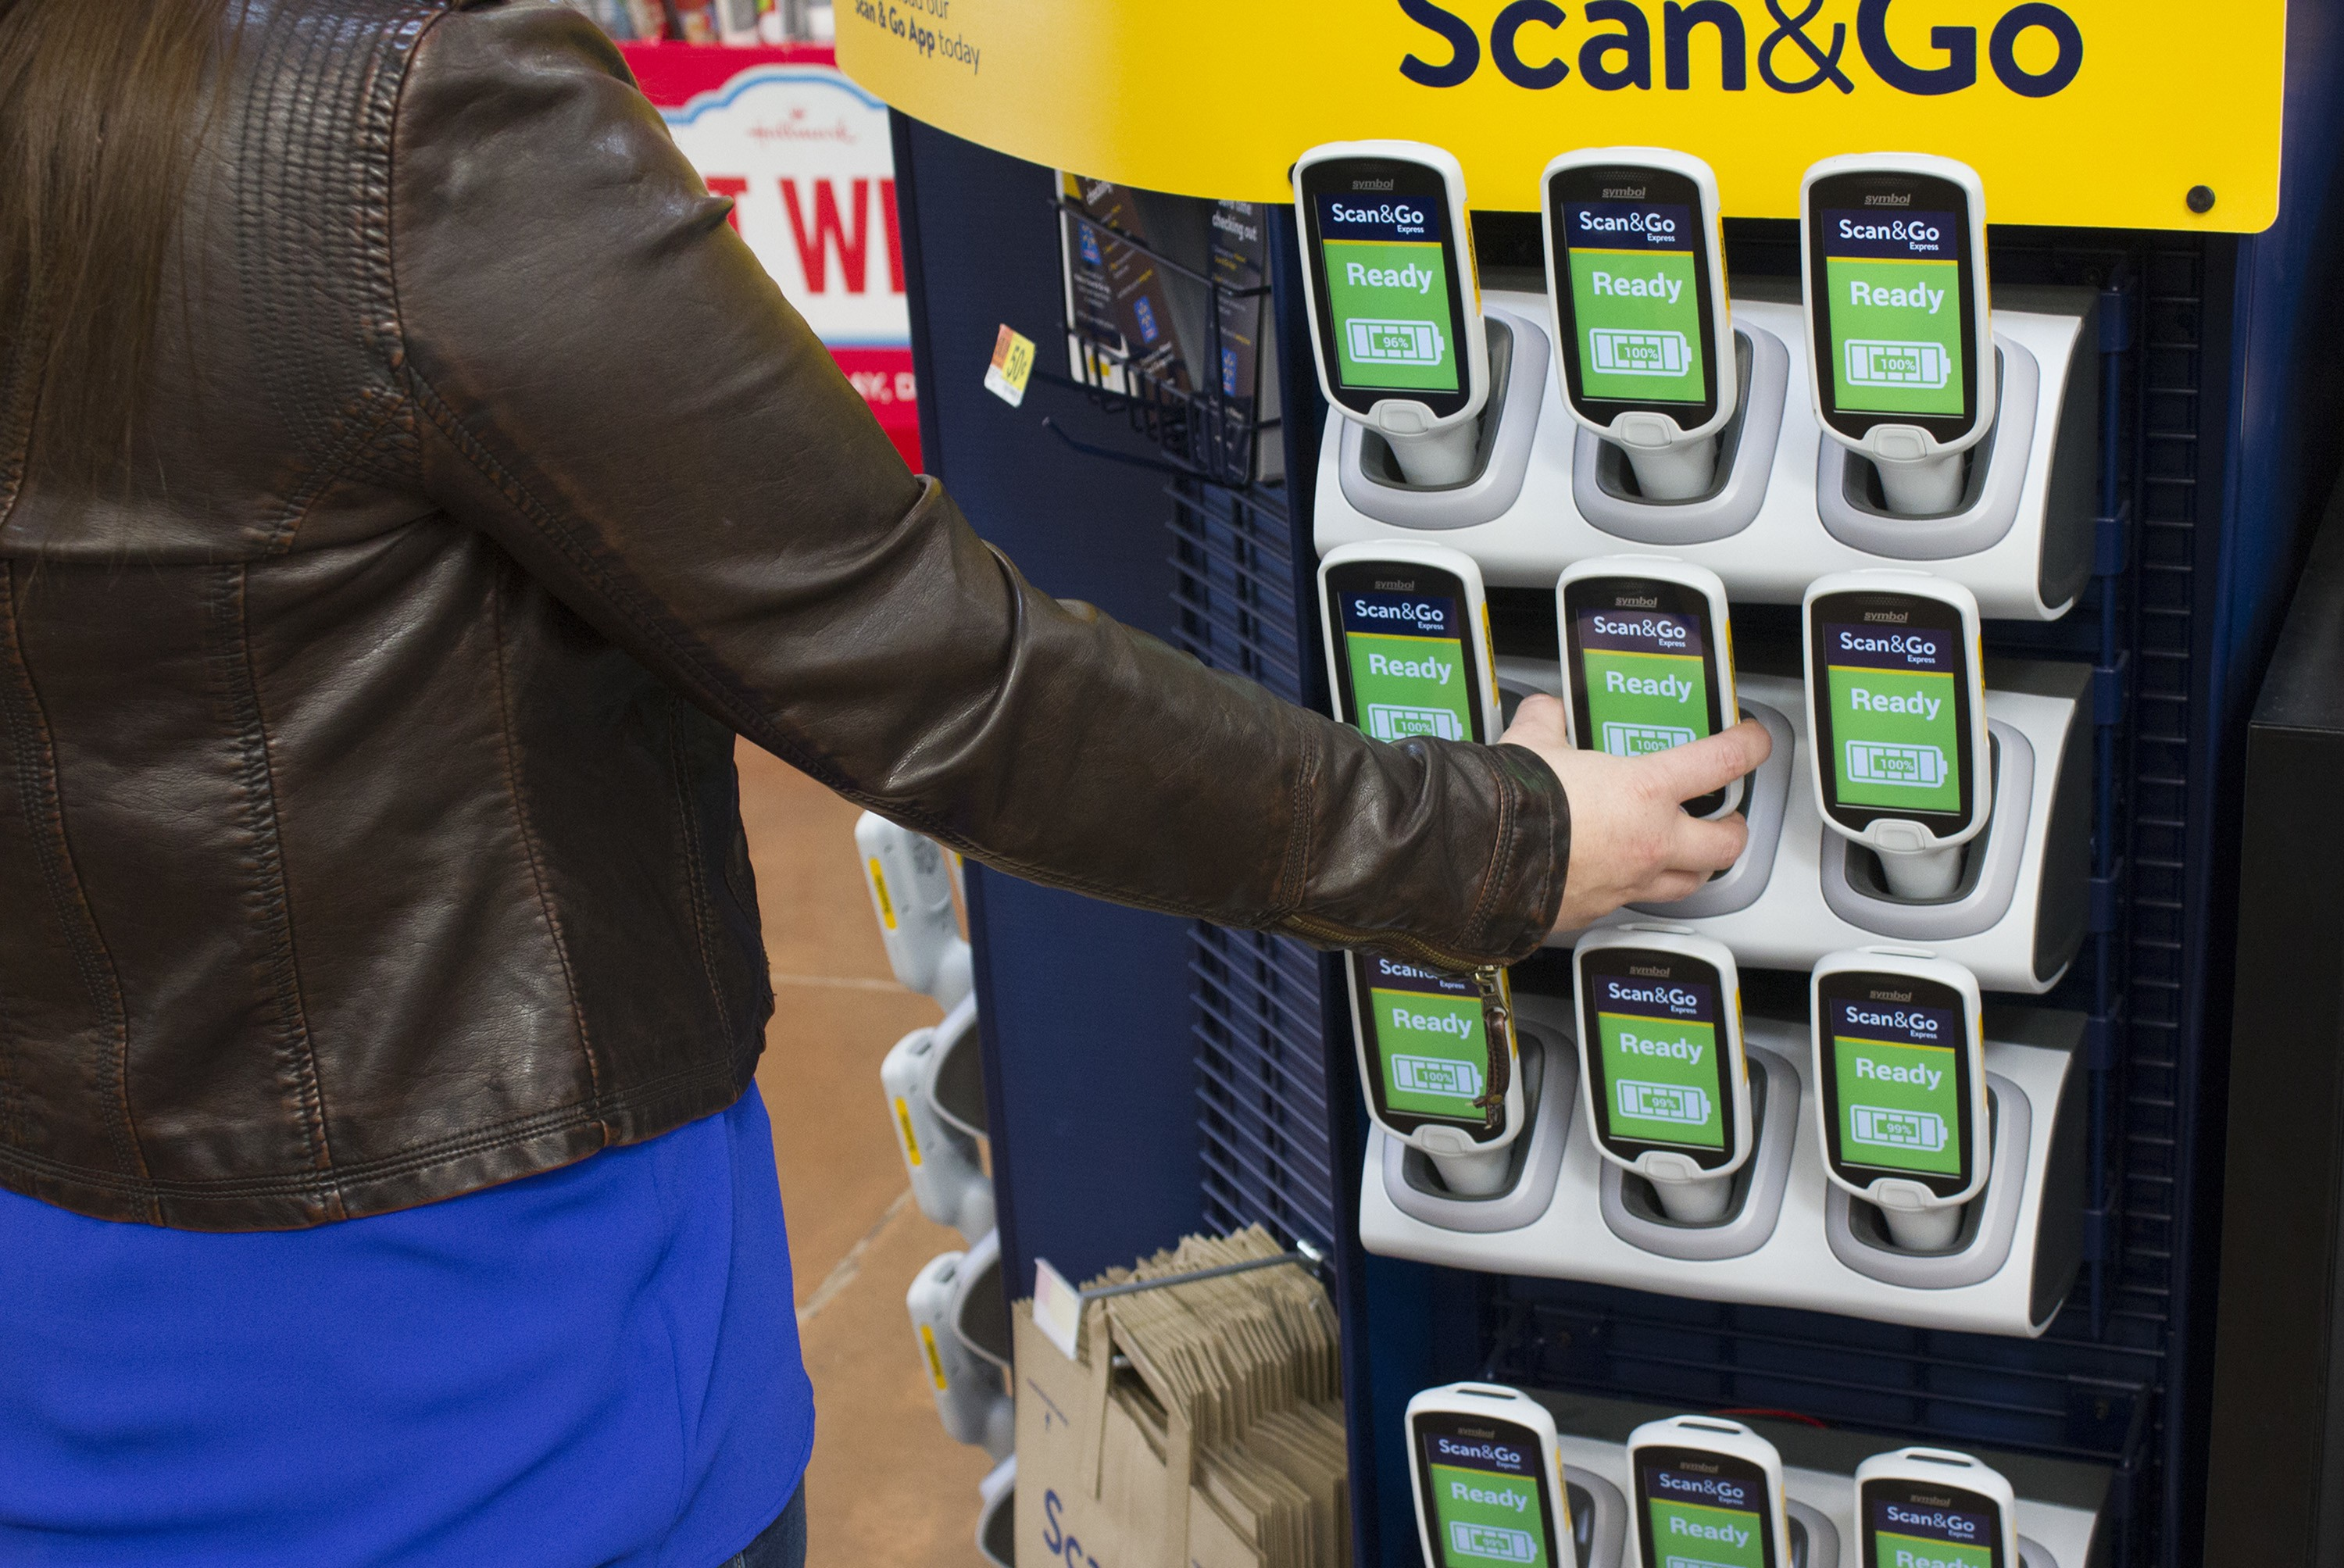 The 2018 trial of Scan&Go offered customers dedicated loaner devices in kiosks like these. The new Scan&Go will likely be via downloaded app only.